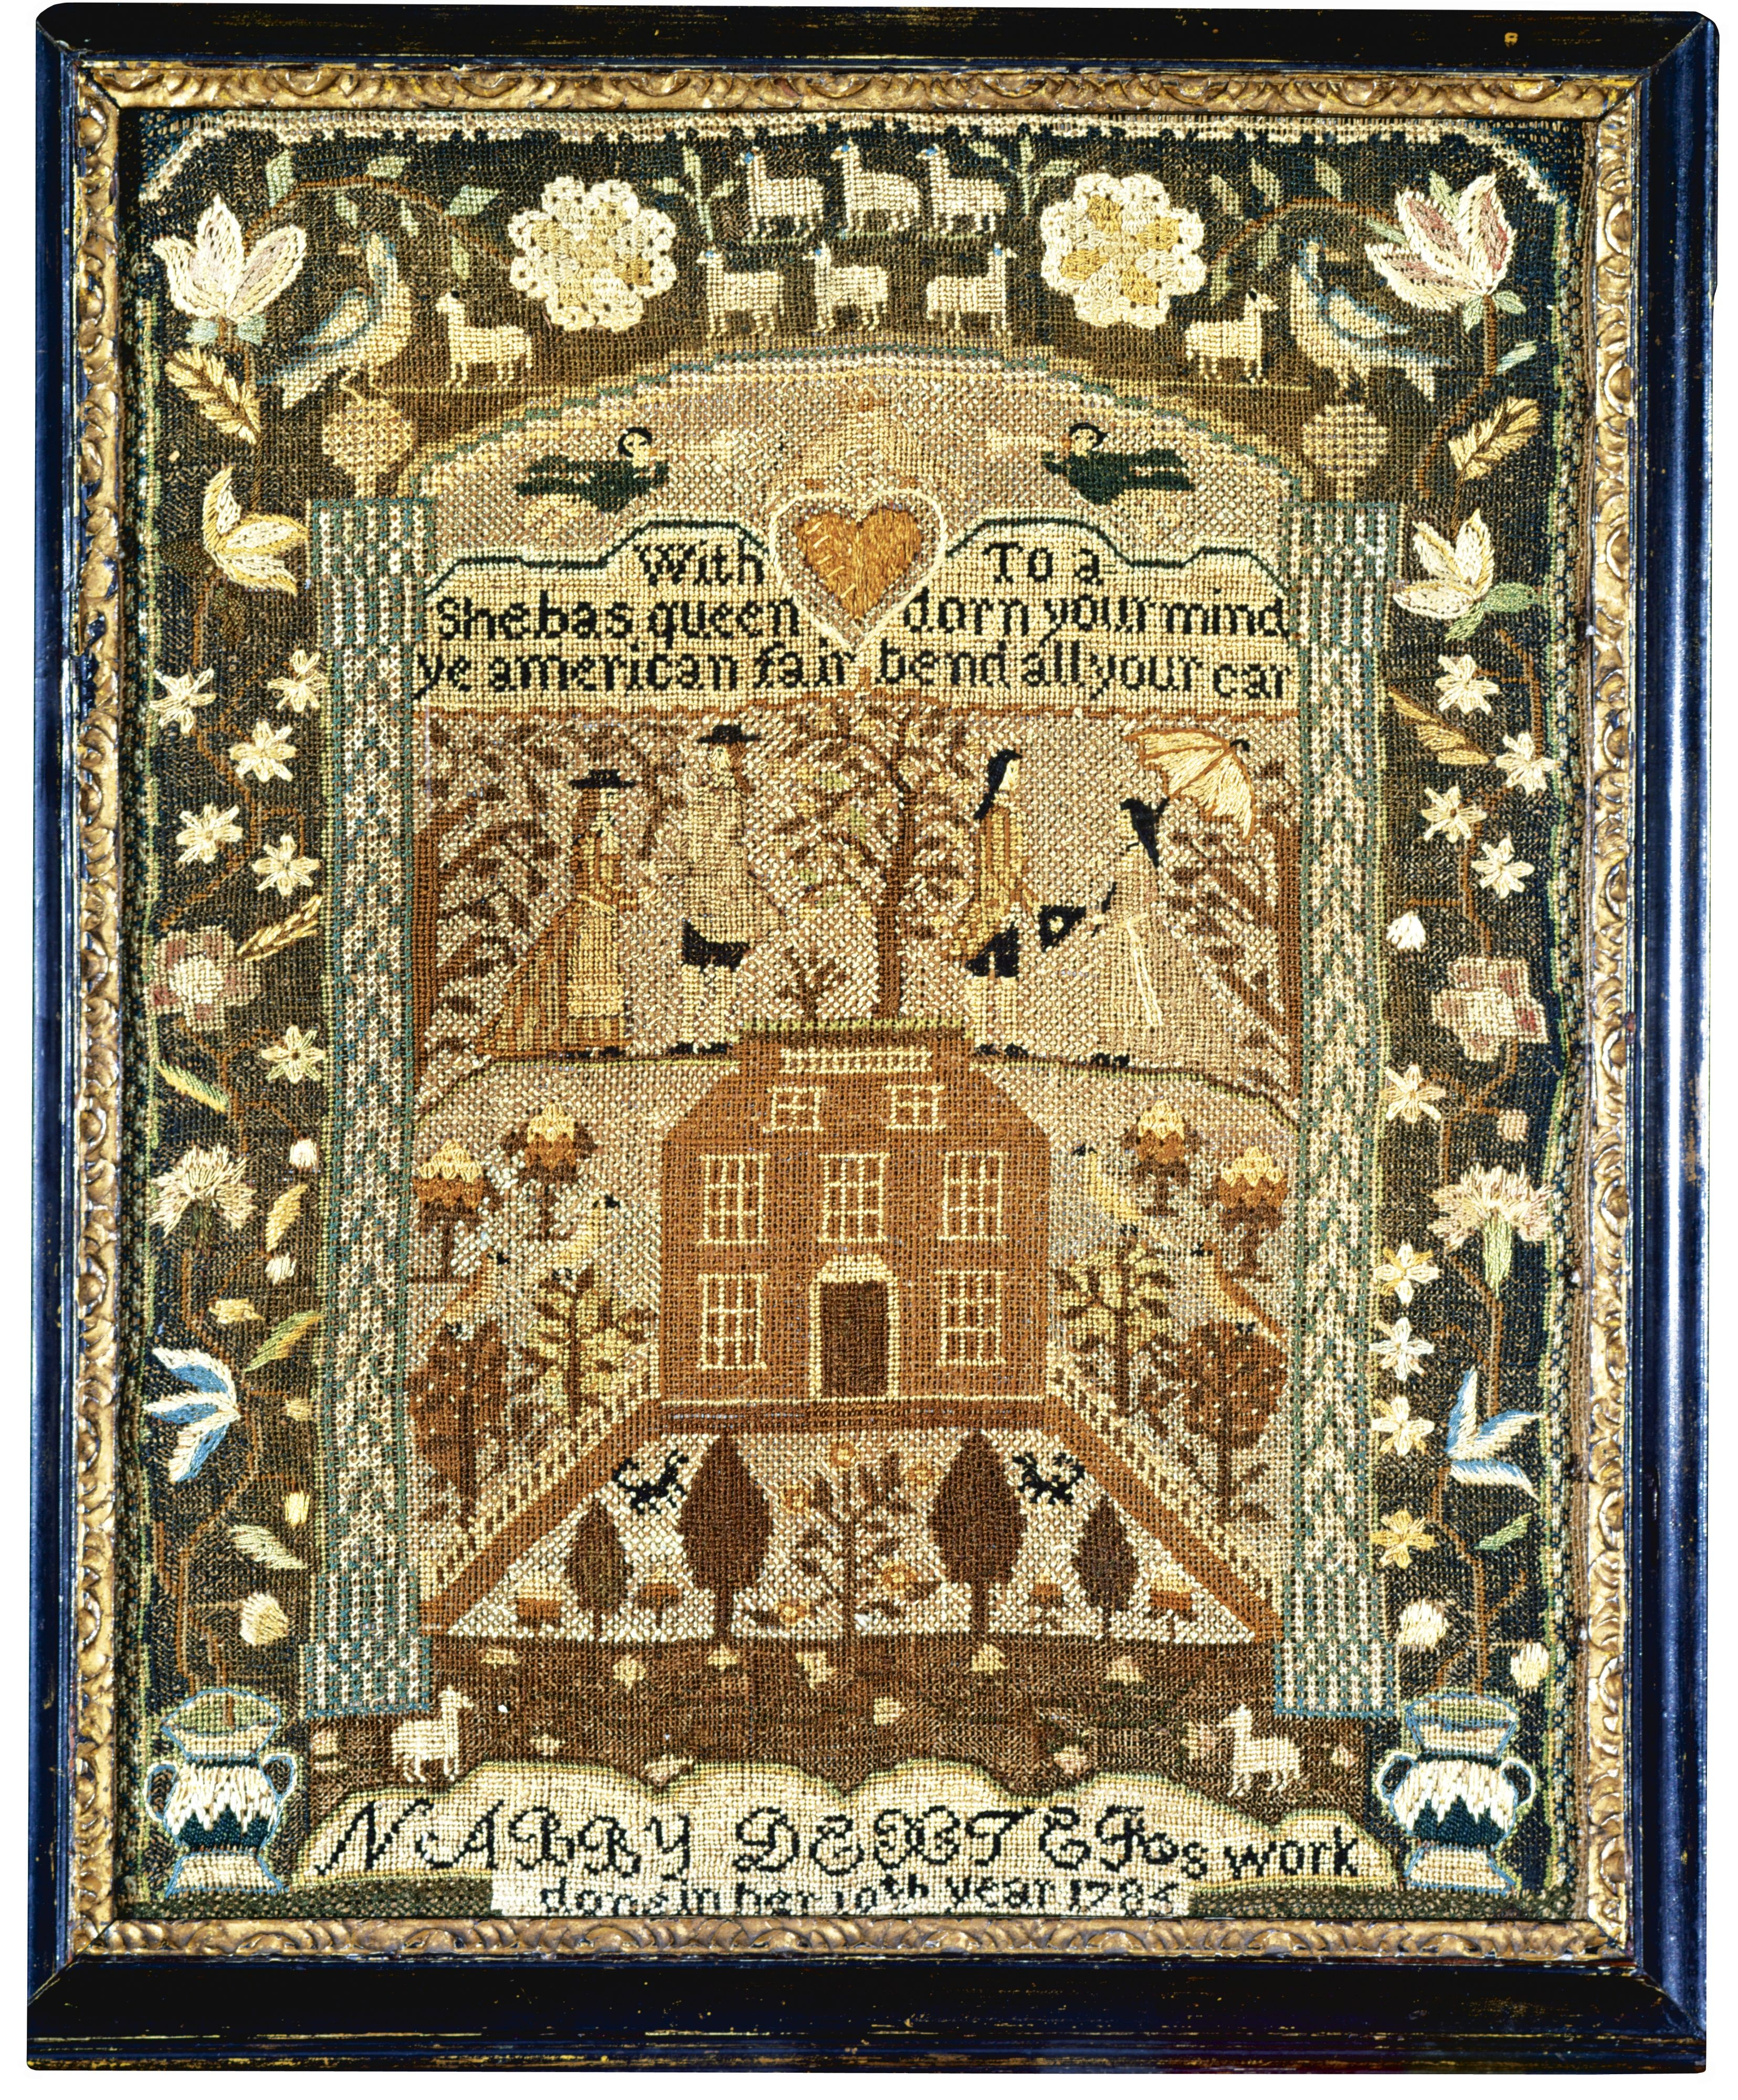 Nabby Dexter - Mary Balch's School - Providence, Rhode Island - 1785. Aged 10. Silk allover on linen. Betty Ring collection. Sold for 40,625 USD